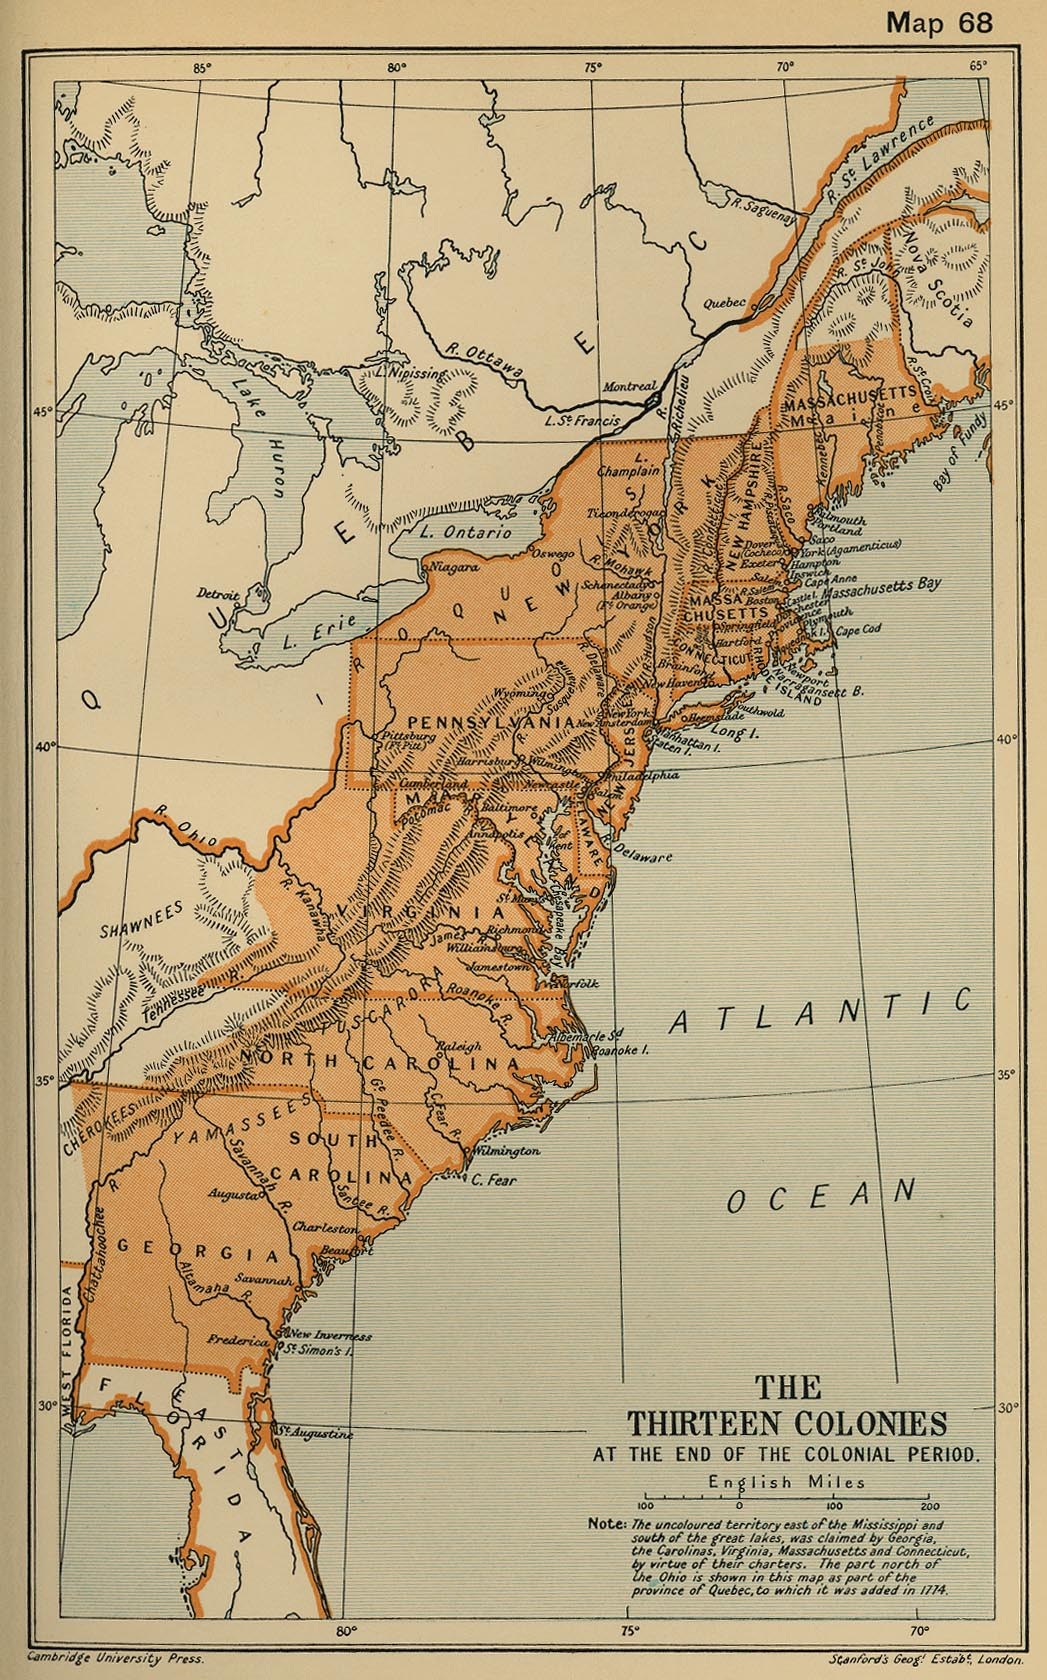 of the American Colonies 1775 Map Of Original Colonies And Quebec on north carolina 13 colonies map, hudson river 13 colonies map, connecticut 13 colonies map, appalachian mountains 13 colonies map, french canada 13 colonies map, white mountains 13 colonies map, new england 13 colonies map, adirondack mountains 13 colonies map, territories 13 colonies map, delaware 13 colonies map, rhode island 13 colonies map,